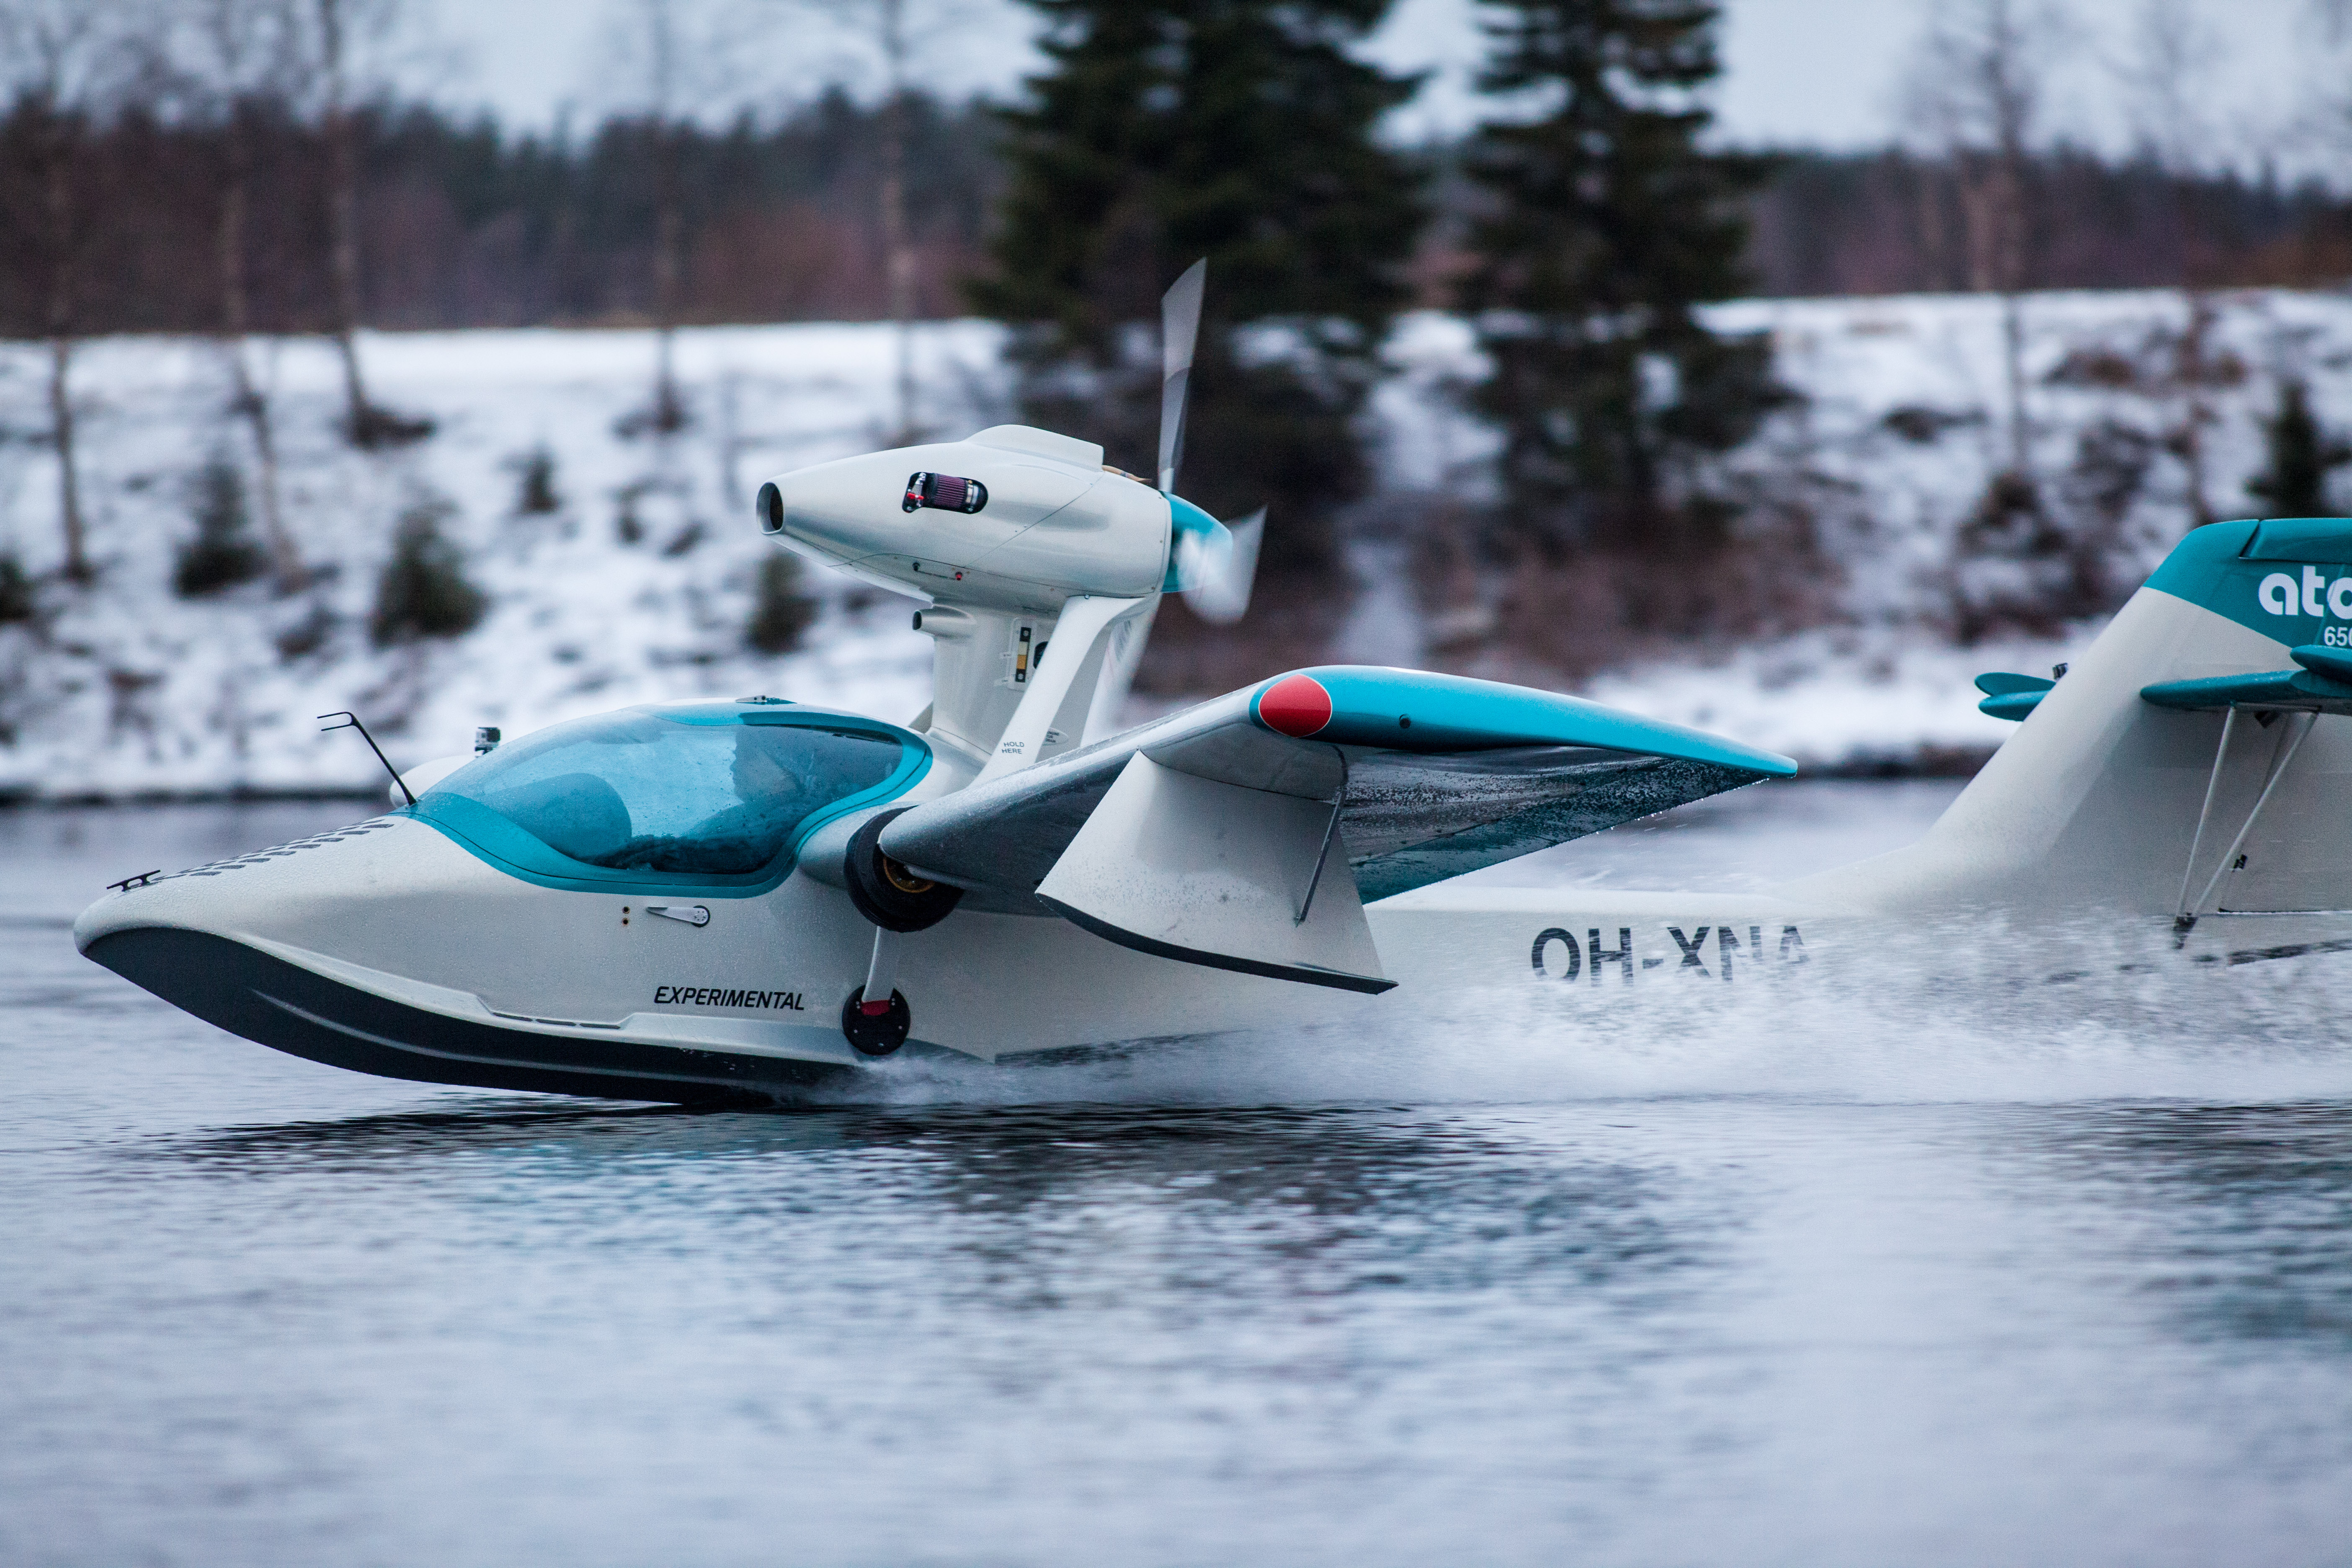 The Atol 650, a new high-performance amphibious aircraft with folding wings, will be produced for the U.S. market at Brunswick Landing, according to a release from Atol USA Inc. (Courtesy: Atol)